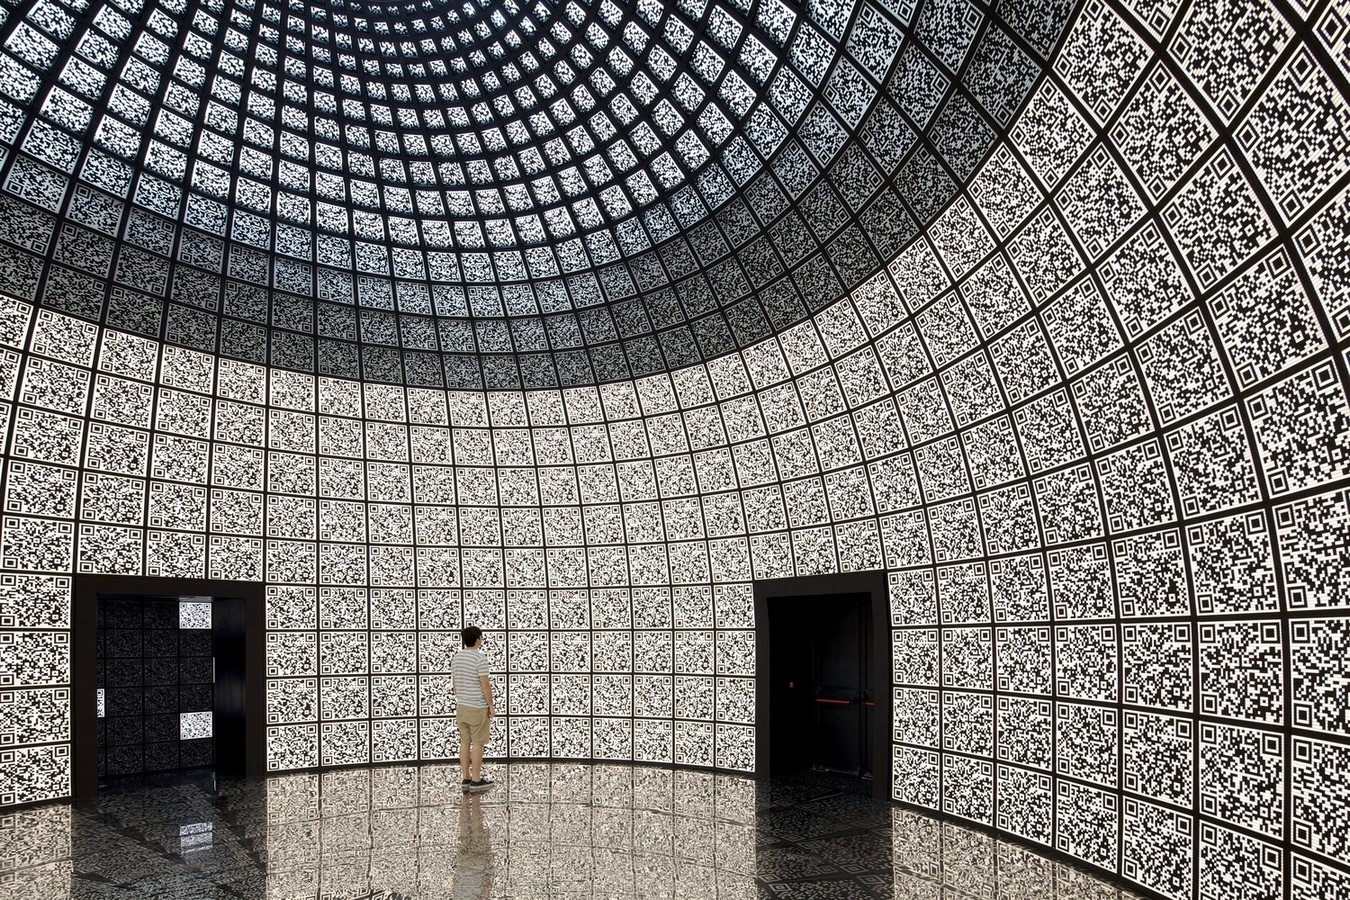 15 Most innovative biennale pavilion architecture throughout years - Sheet11